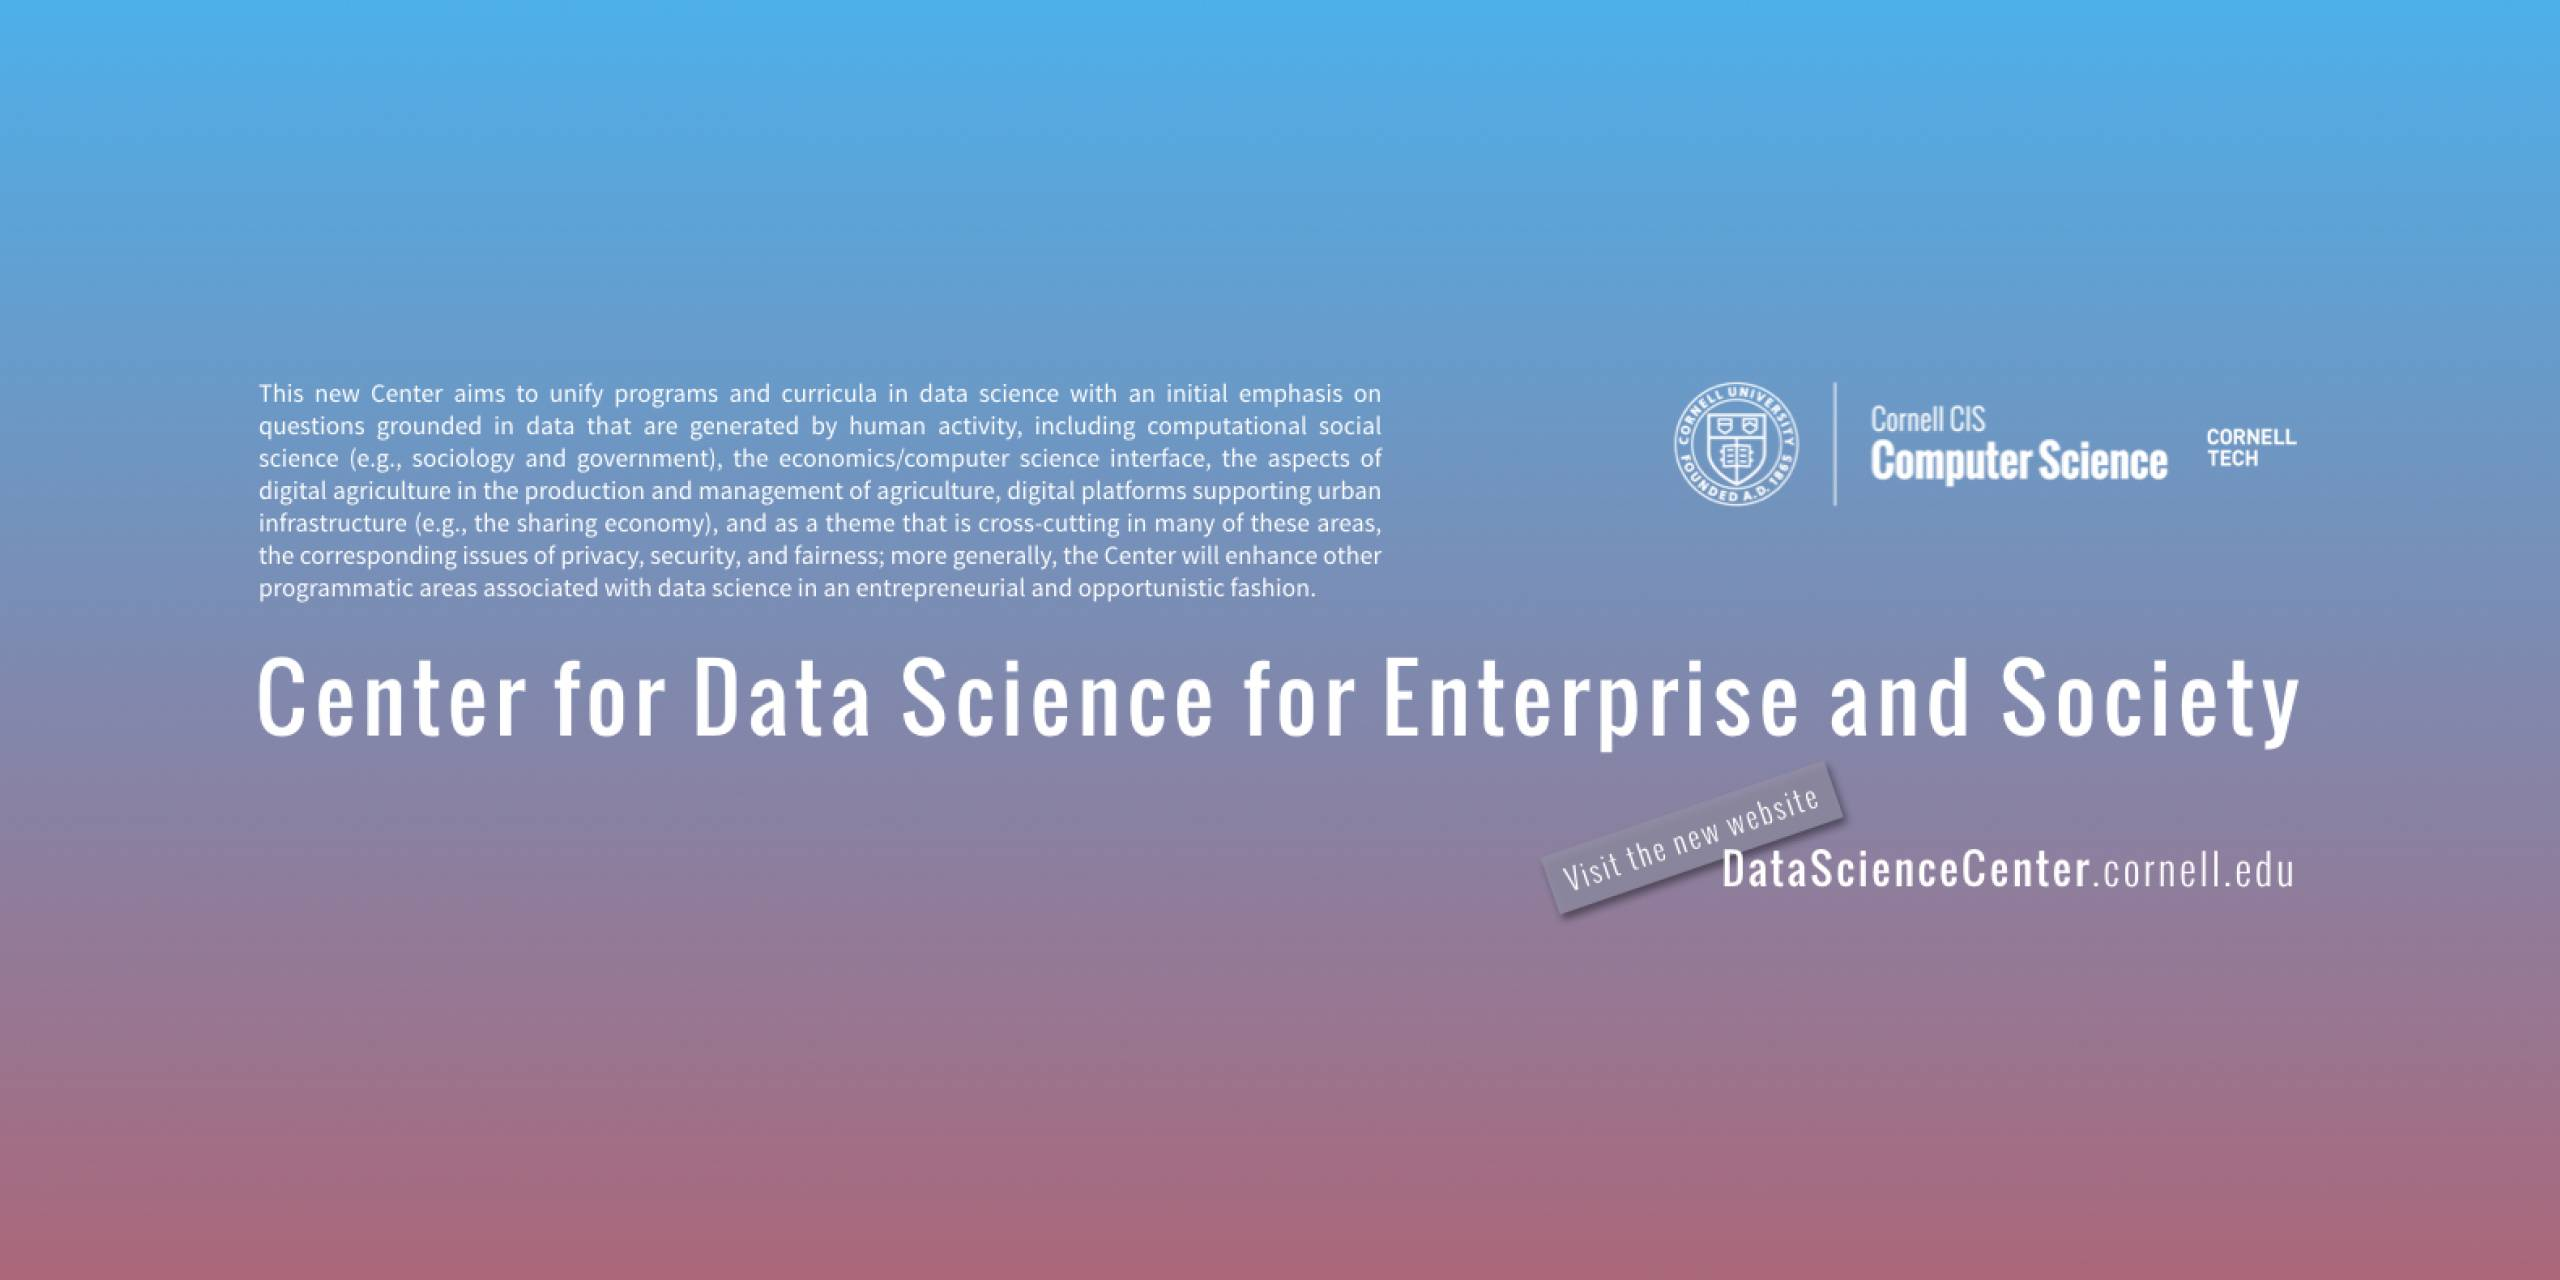 Center for Data Science for Enterprise and Society